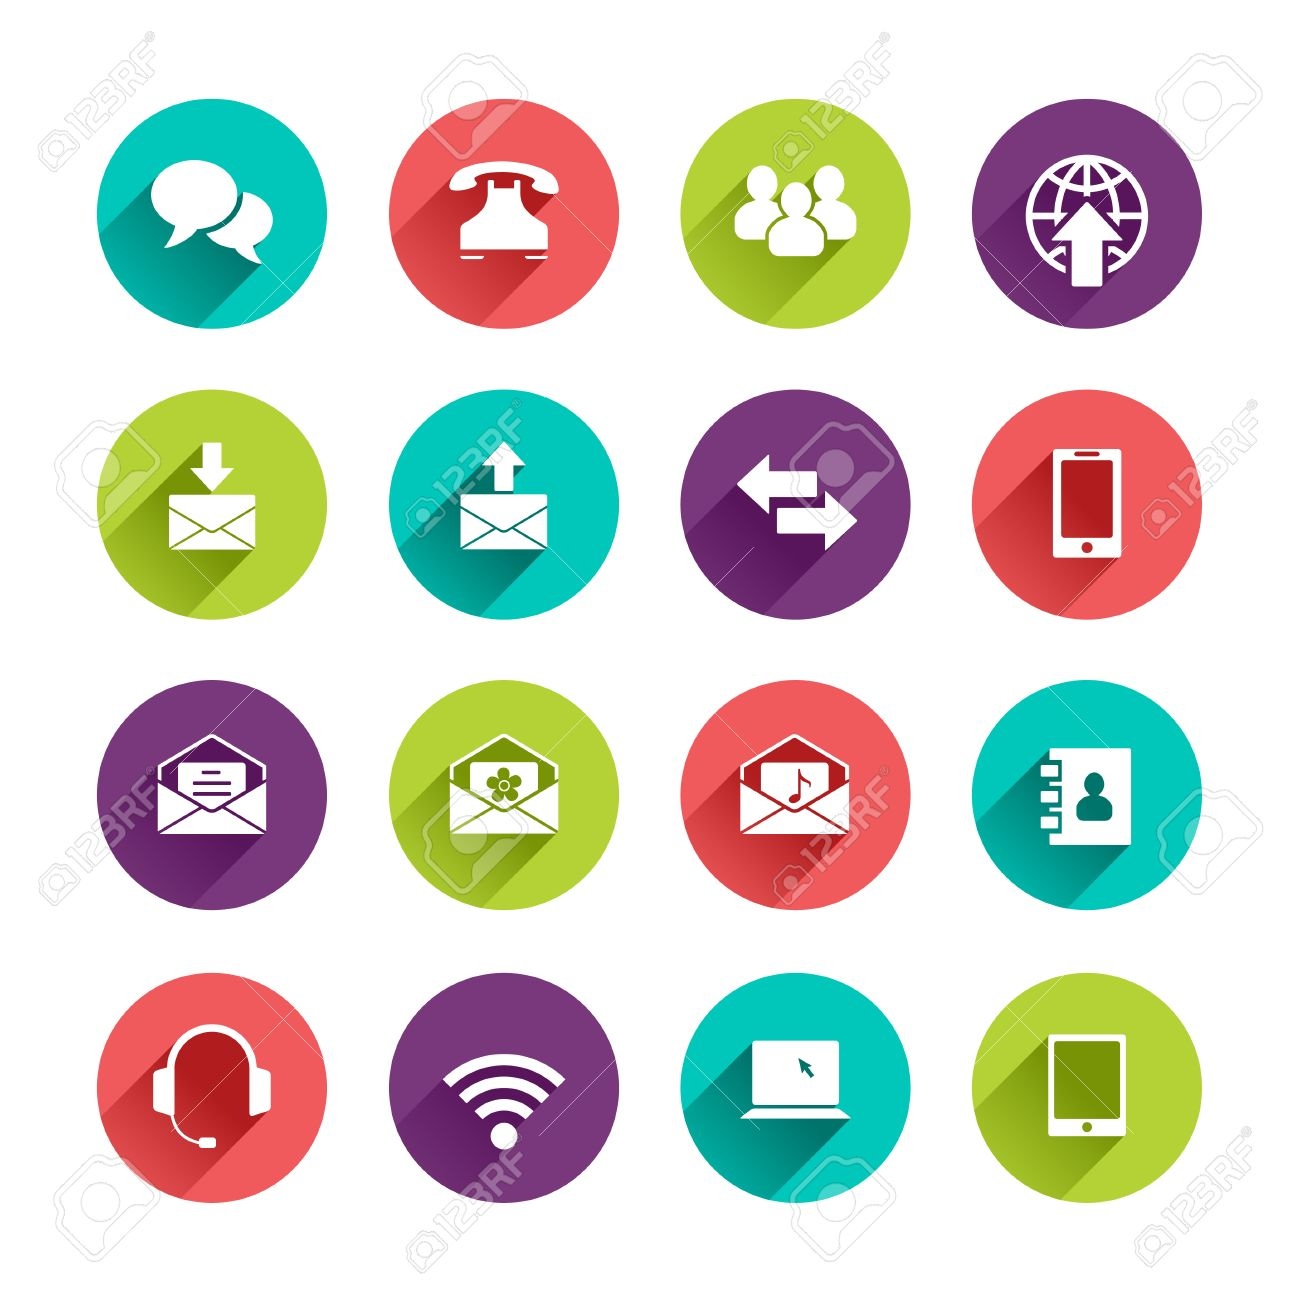 phone email icon vector. vector web icons set in flat design with long shadows on circle buttons speech bubble phone email icon